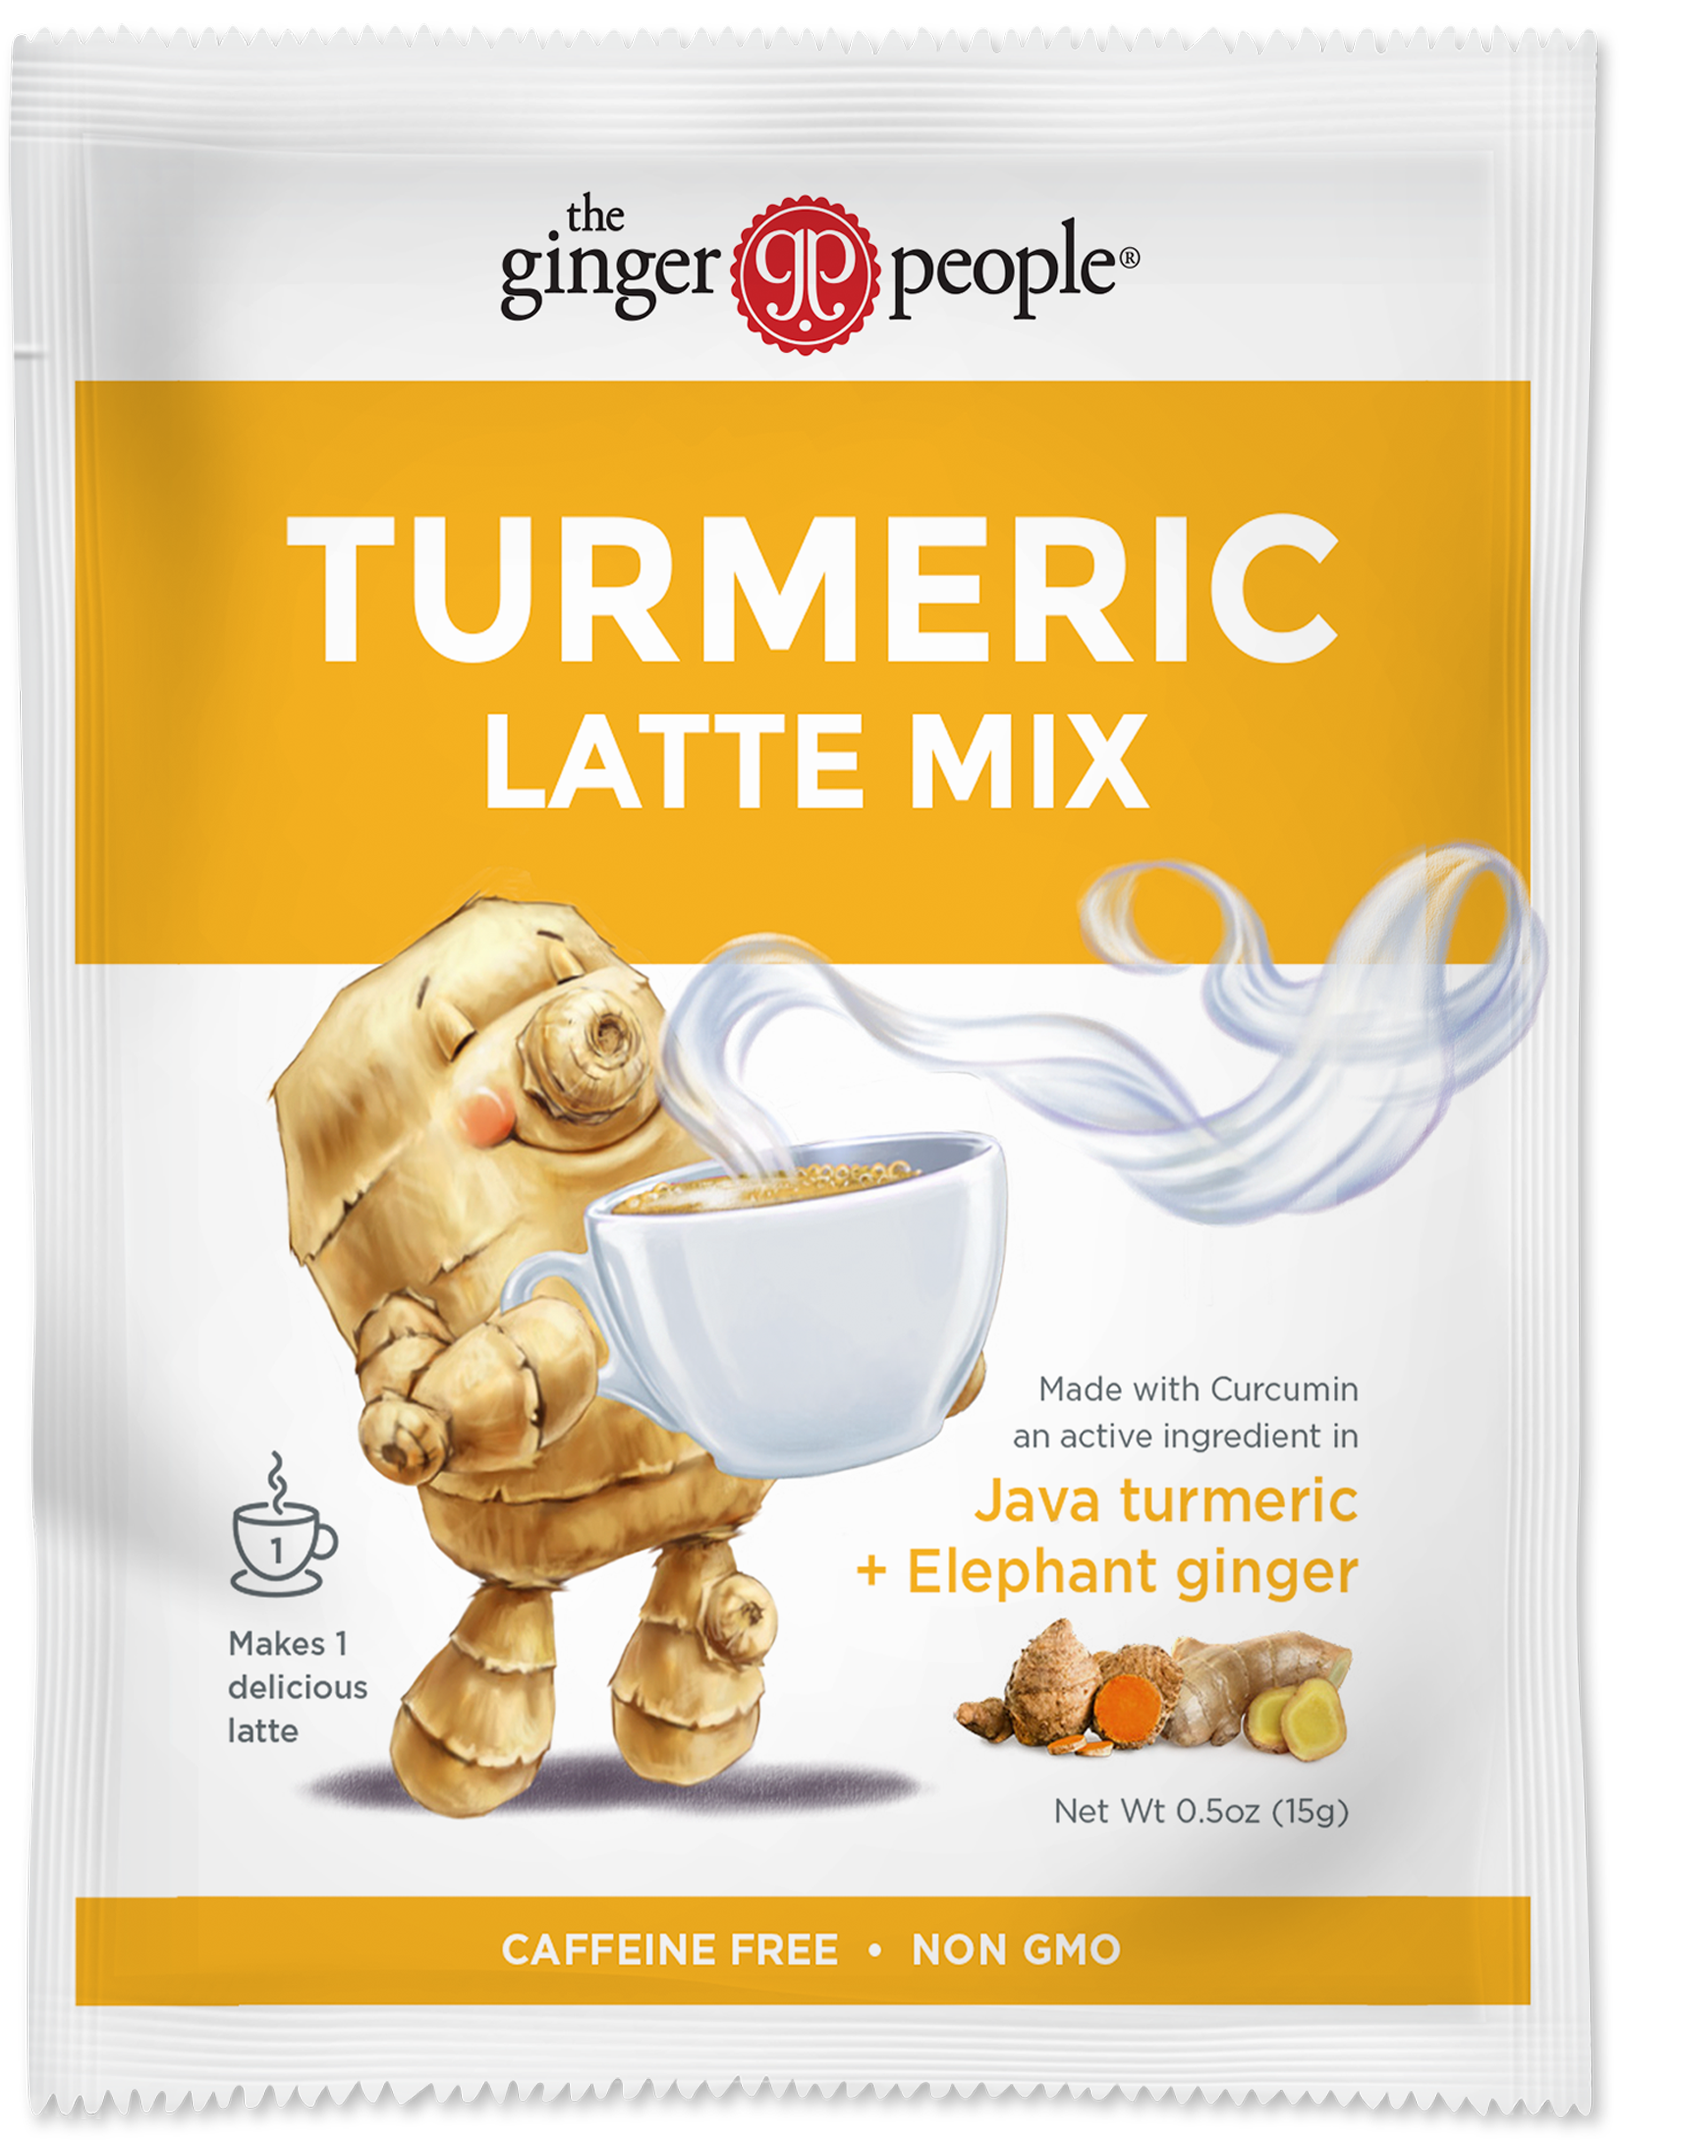 turmeric-latte-mix-golden-milk-ginger-people